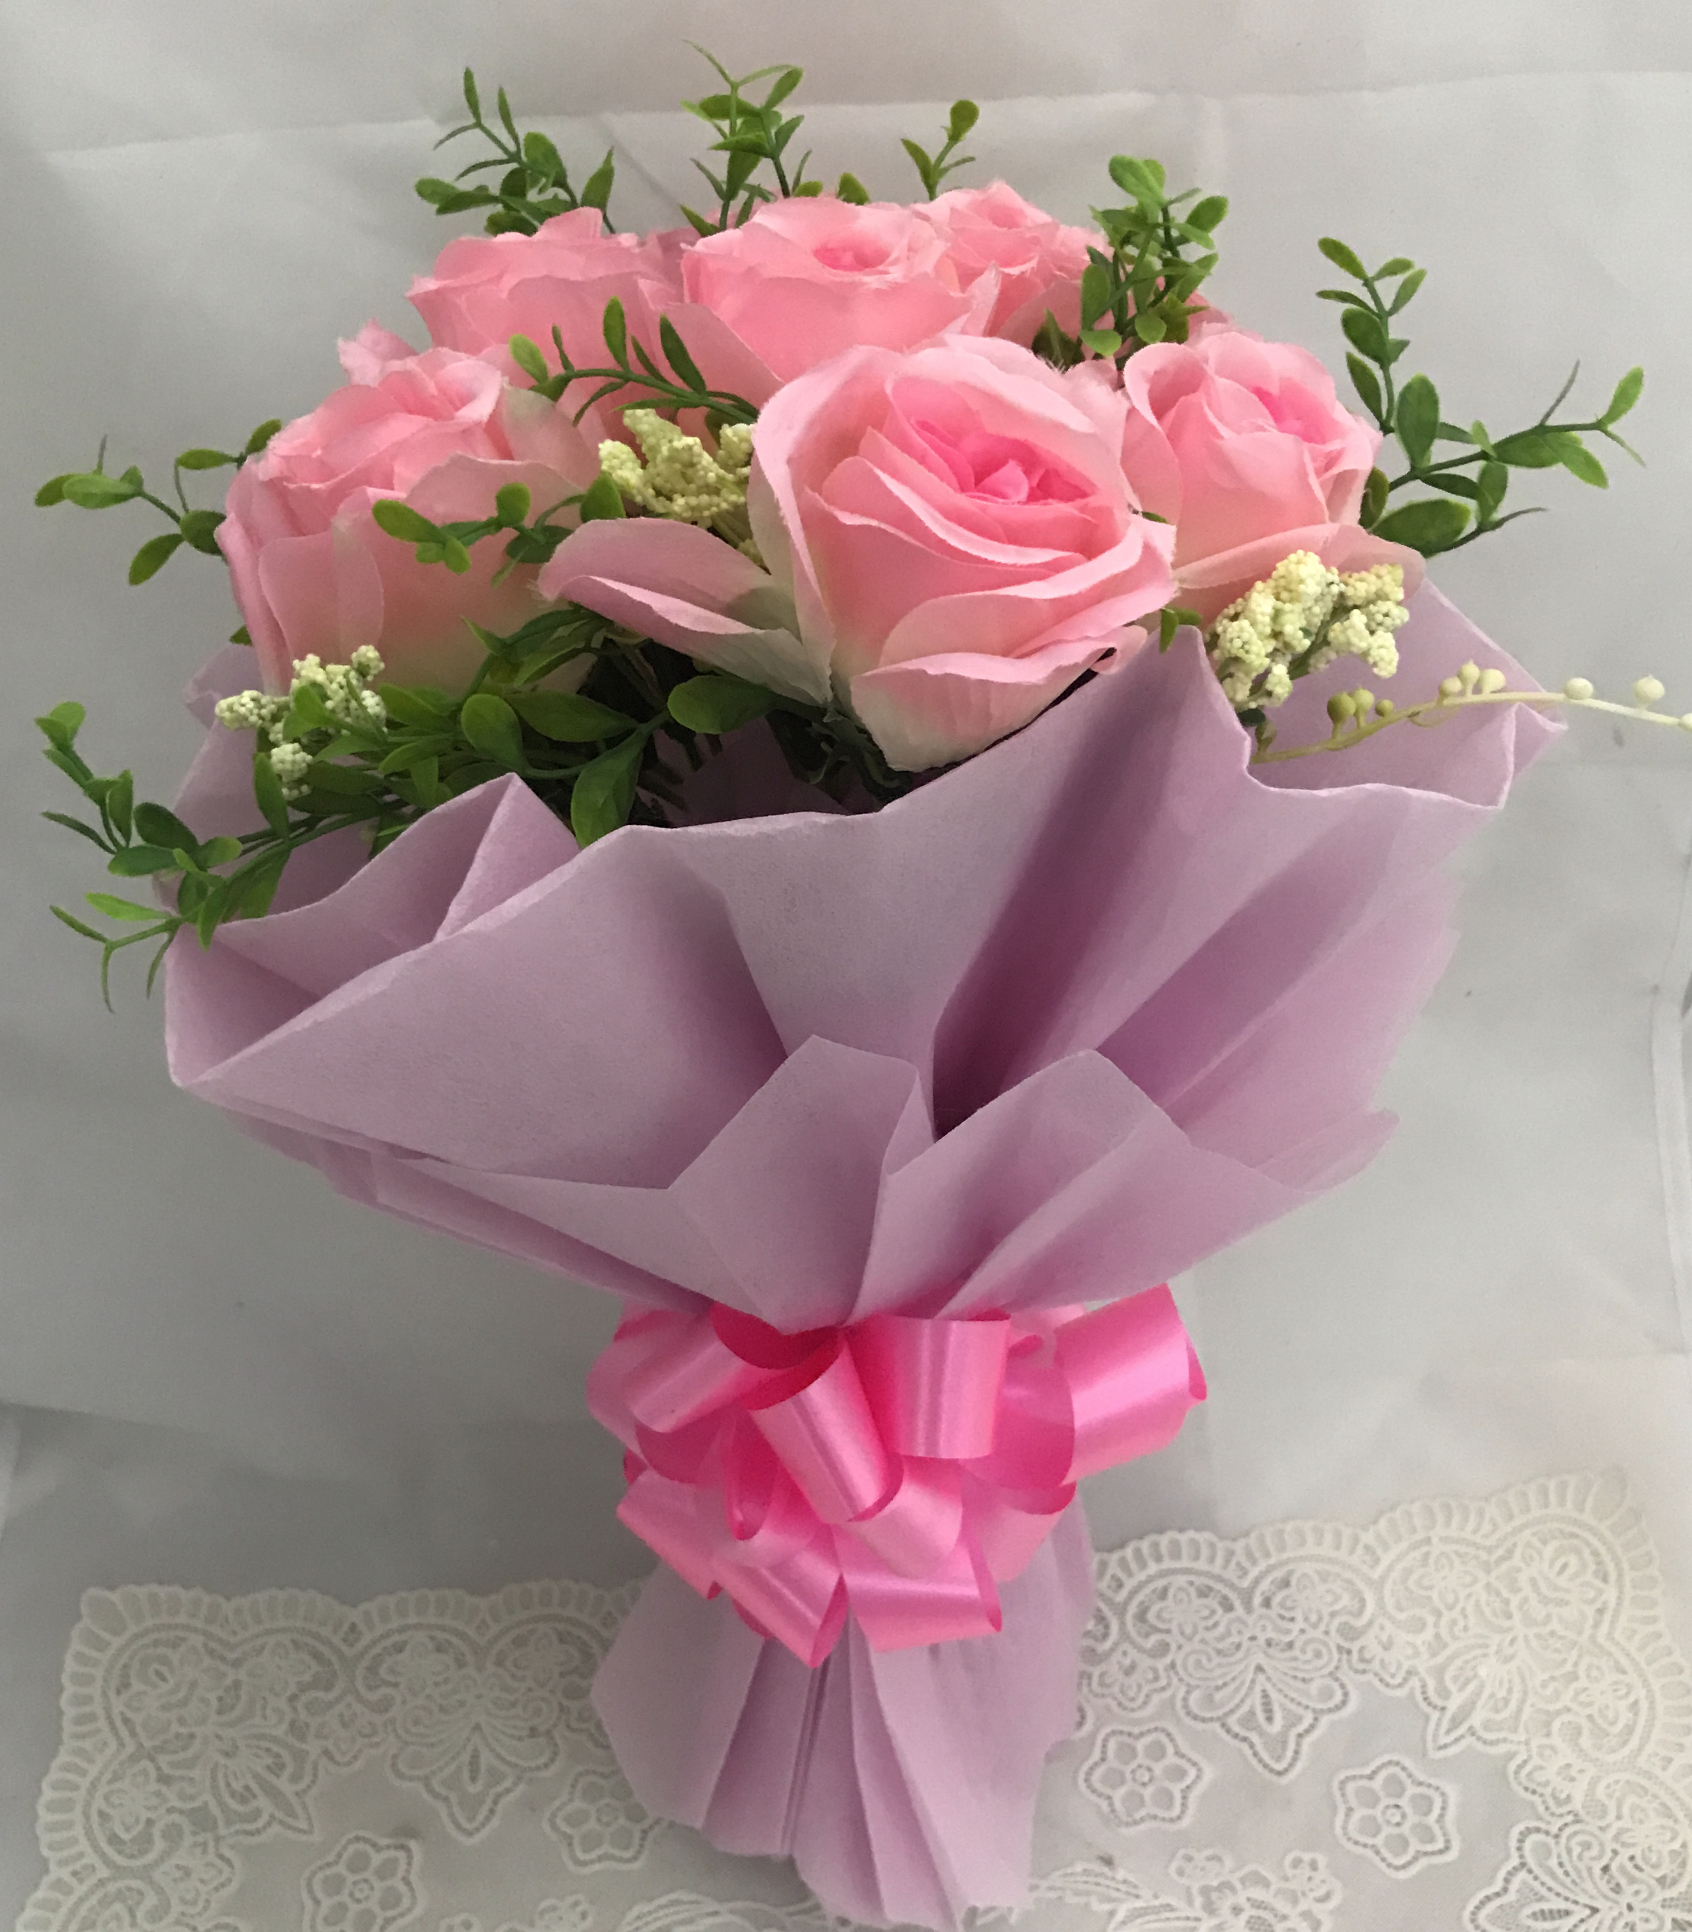 Cake Delivery Yusuf Sarai DelhiArtificial 8 Pink Roses Hand Bouquet (Only For Delhi)